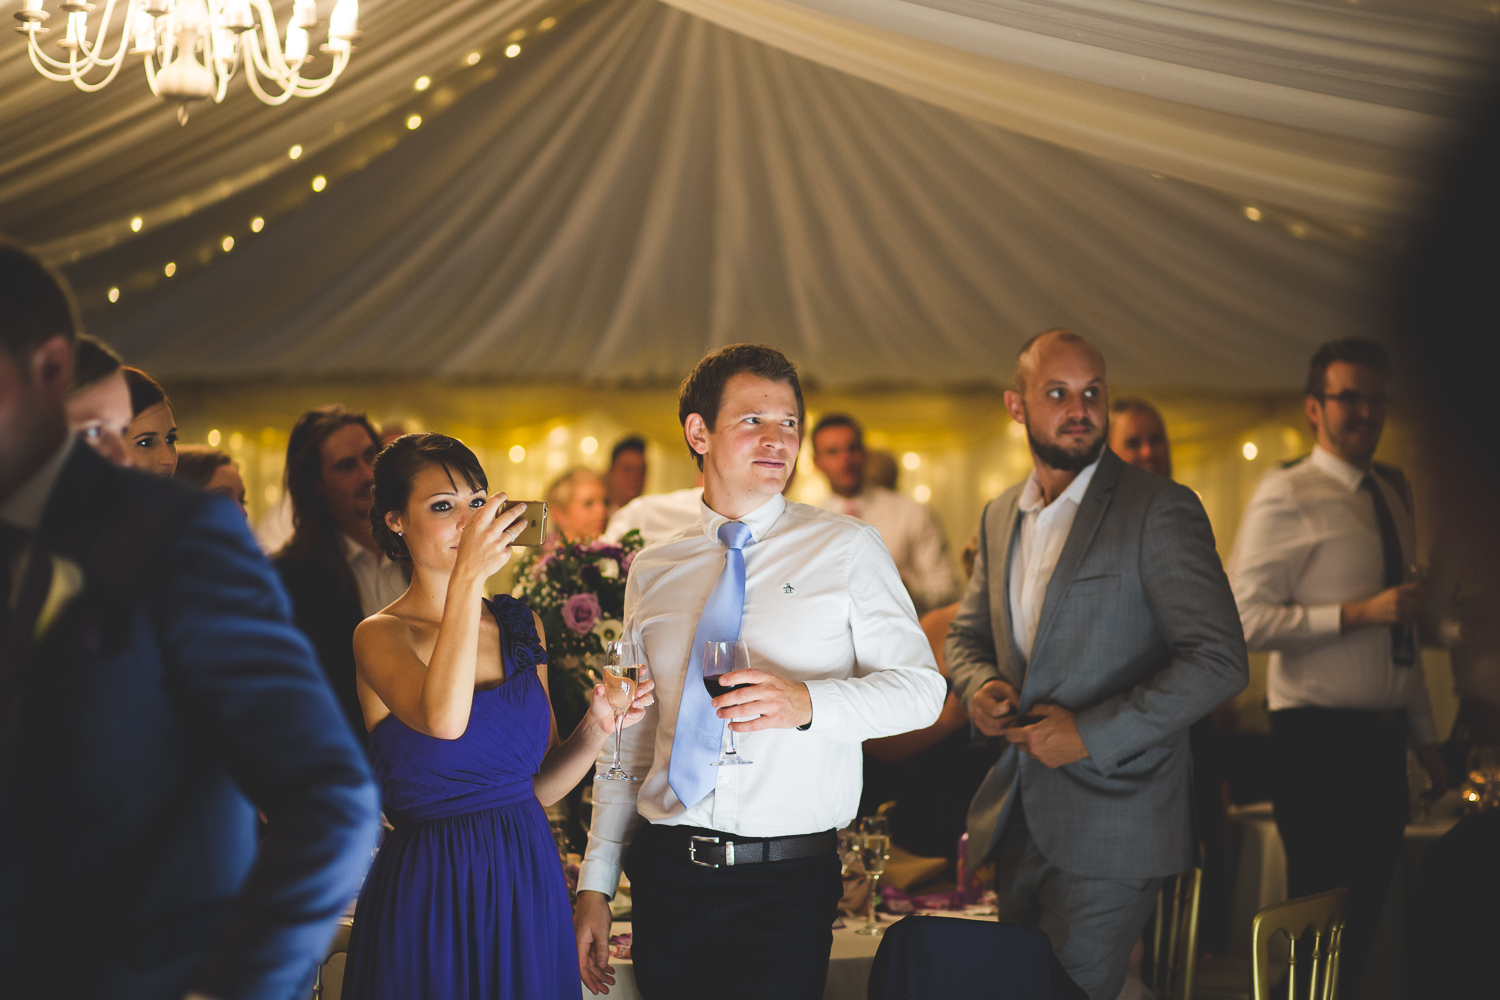 Surrey Wedding Photographer Hedingham Castle108.jpg